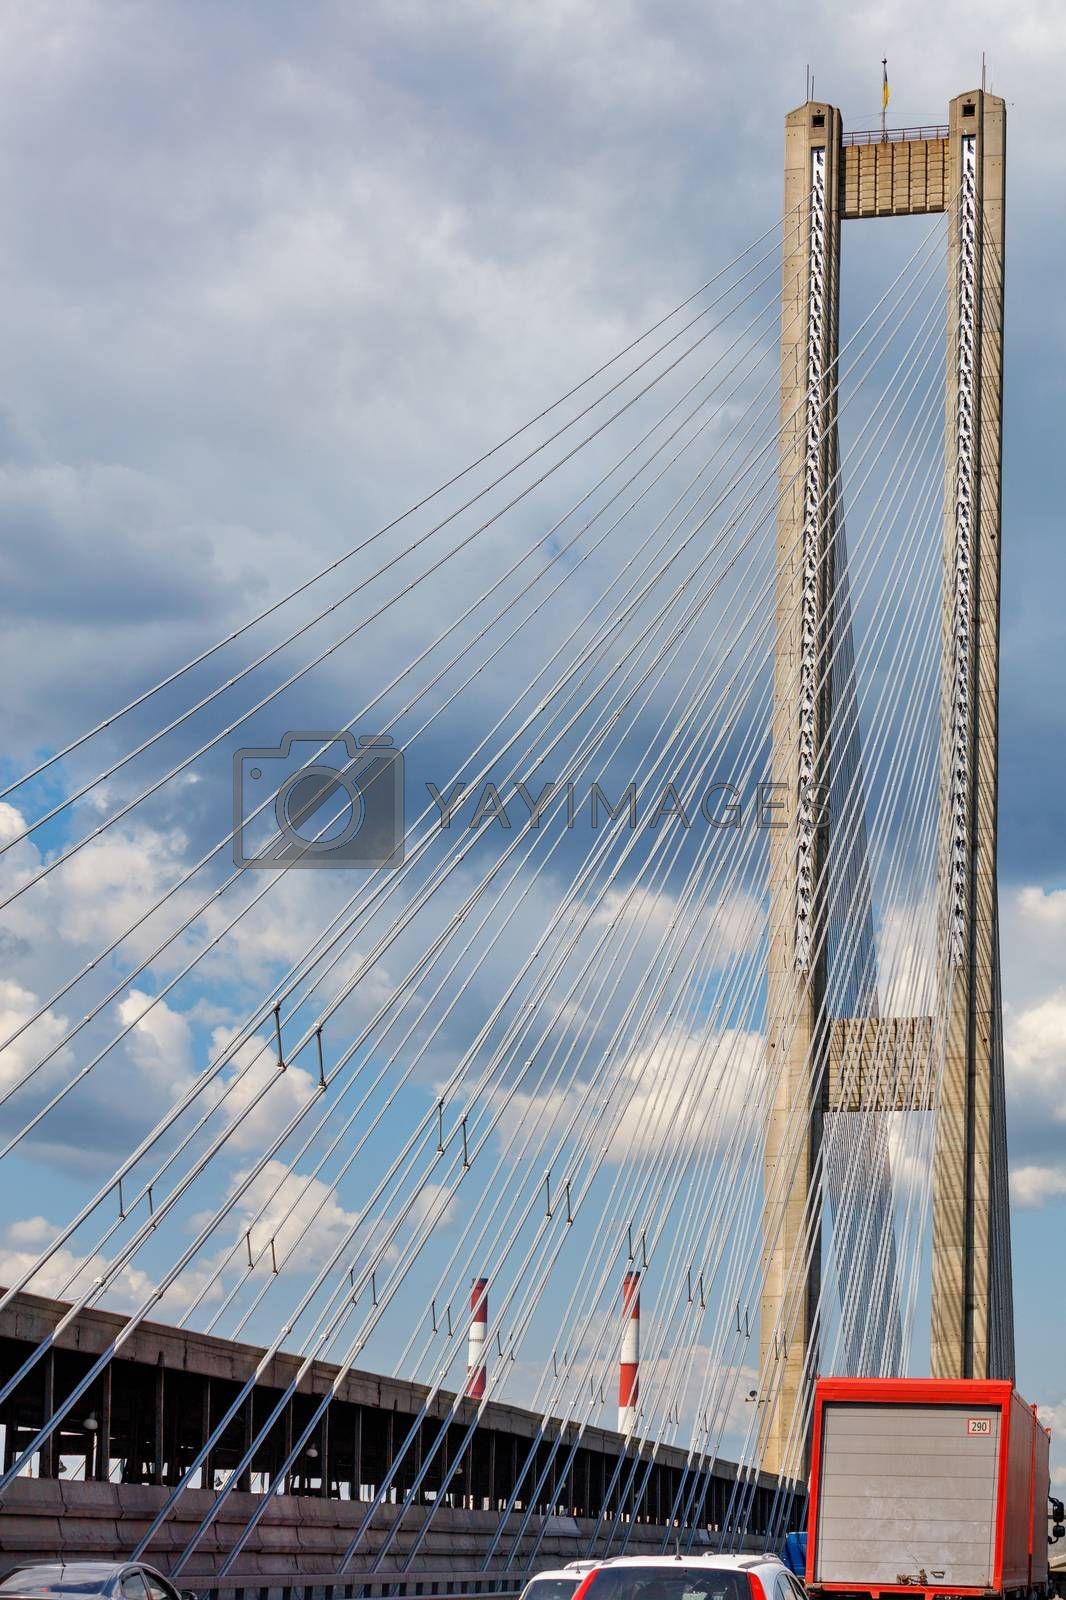 Cable-stayed South Bridge in Kyiv against the background of a stormy cloudy sky, traffic on the bridge, Ukraine.